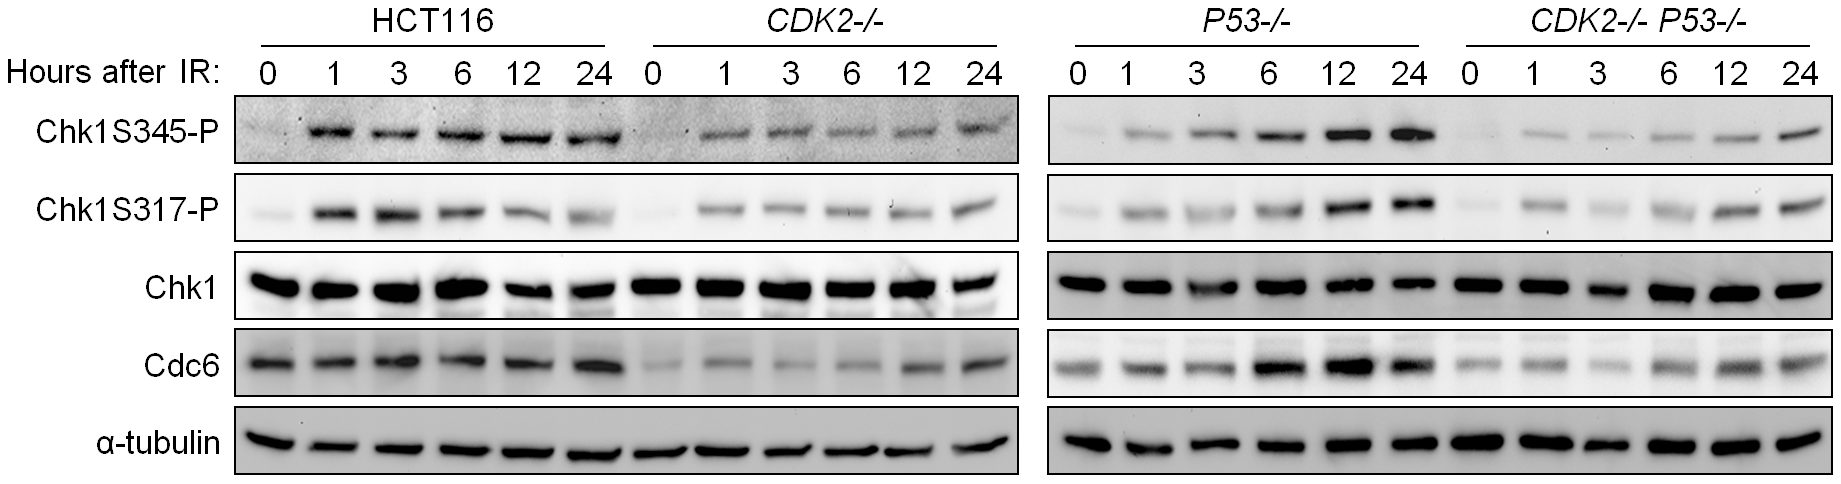 Impaired phosphorylation of Chk1 in Cdk2-deficient cells.